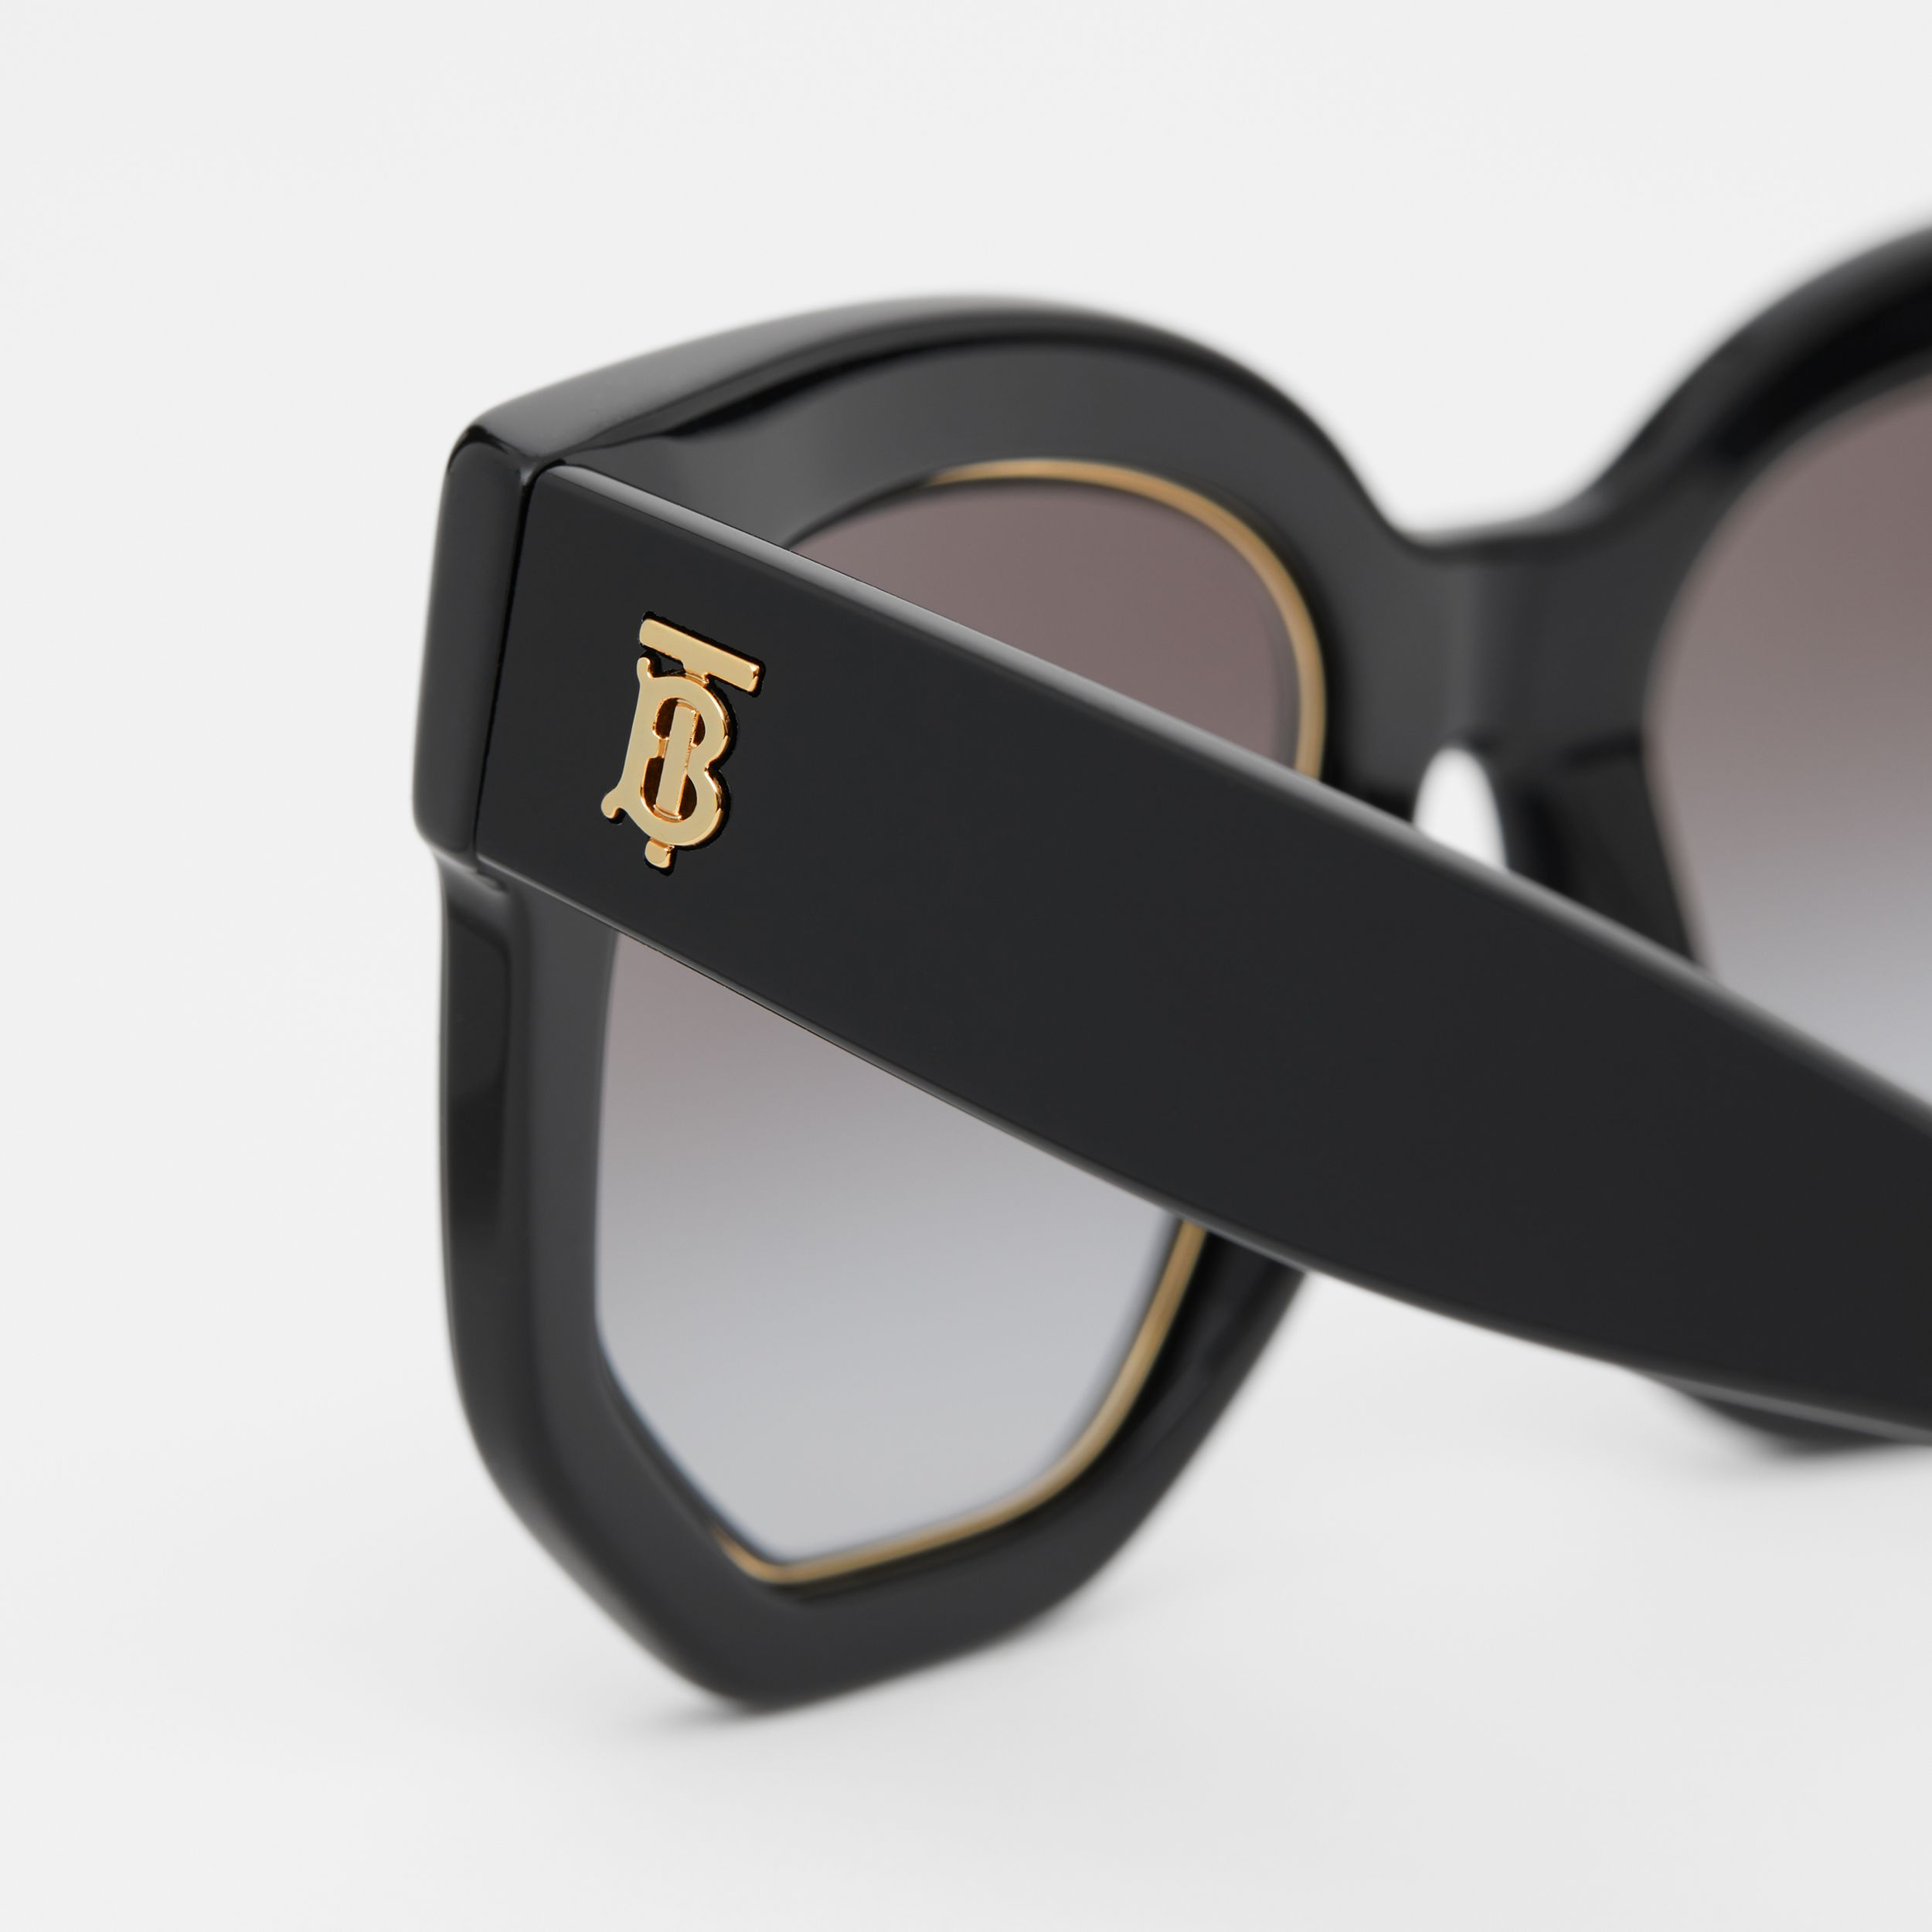 Geometric Frame Sunglasses in Black - Women | Burberry - 2